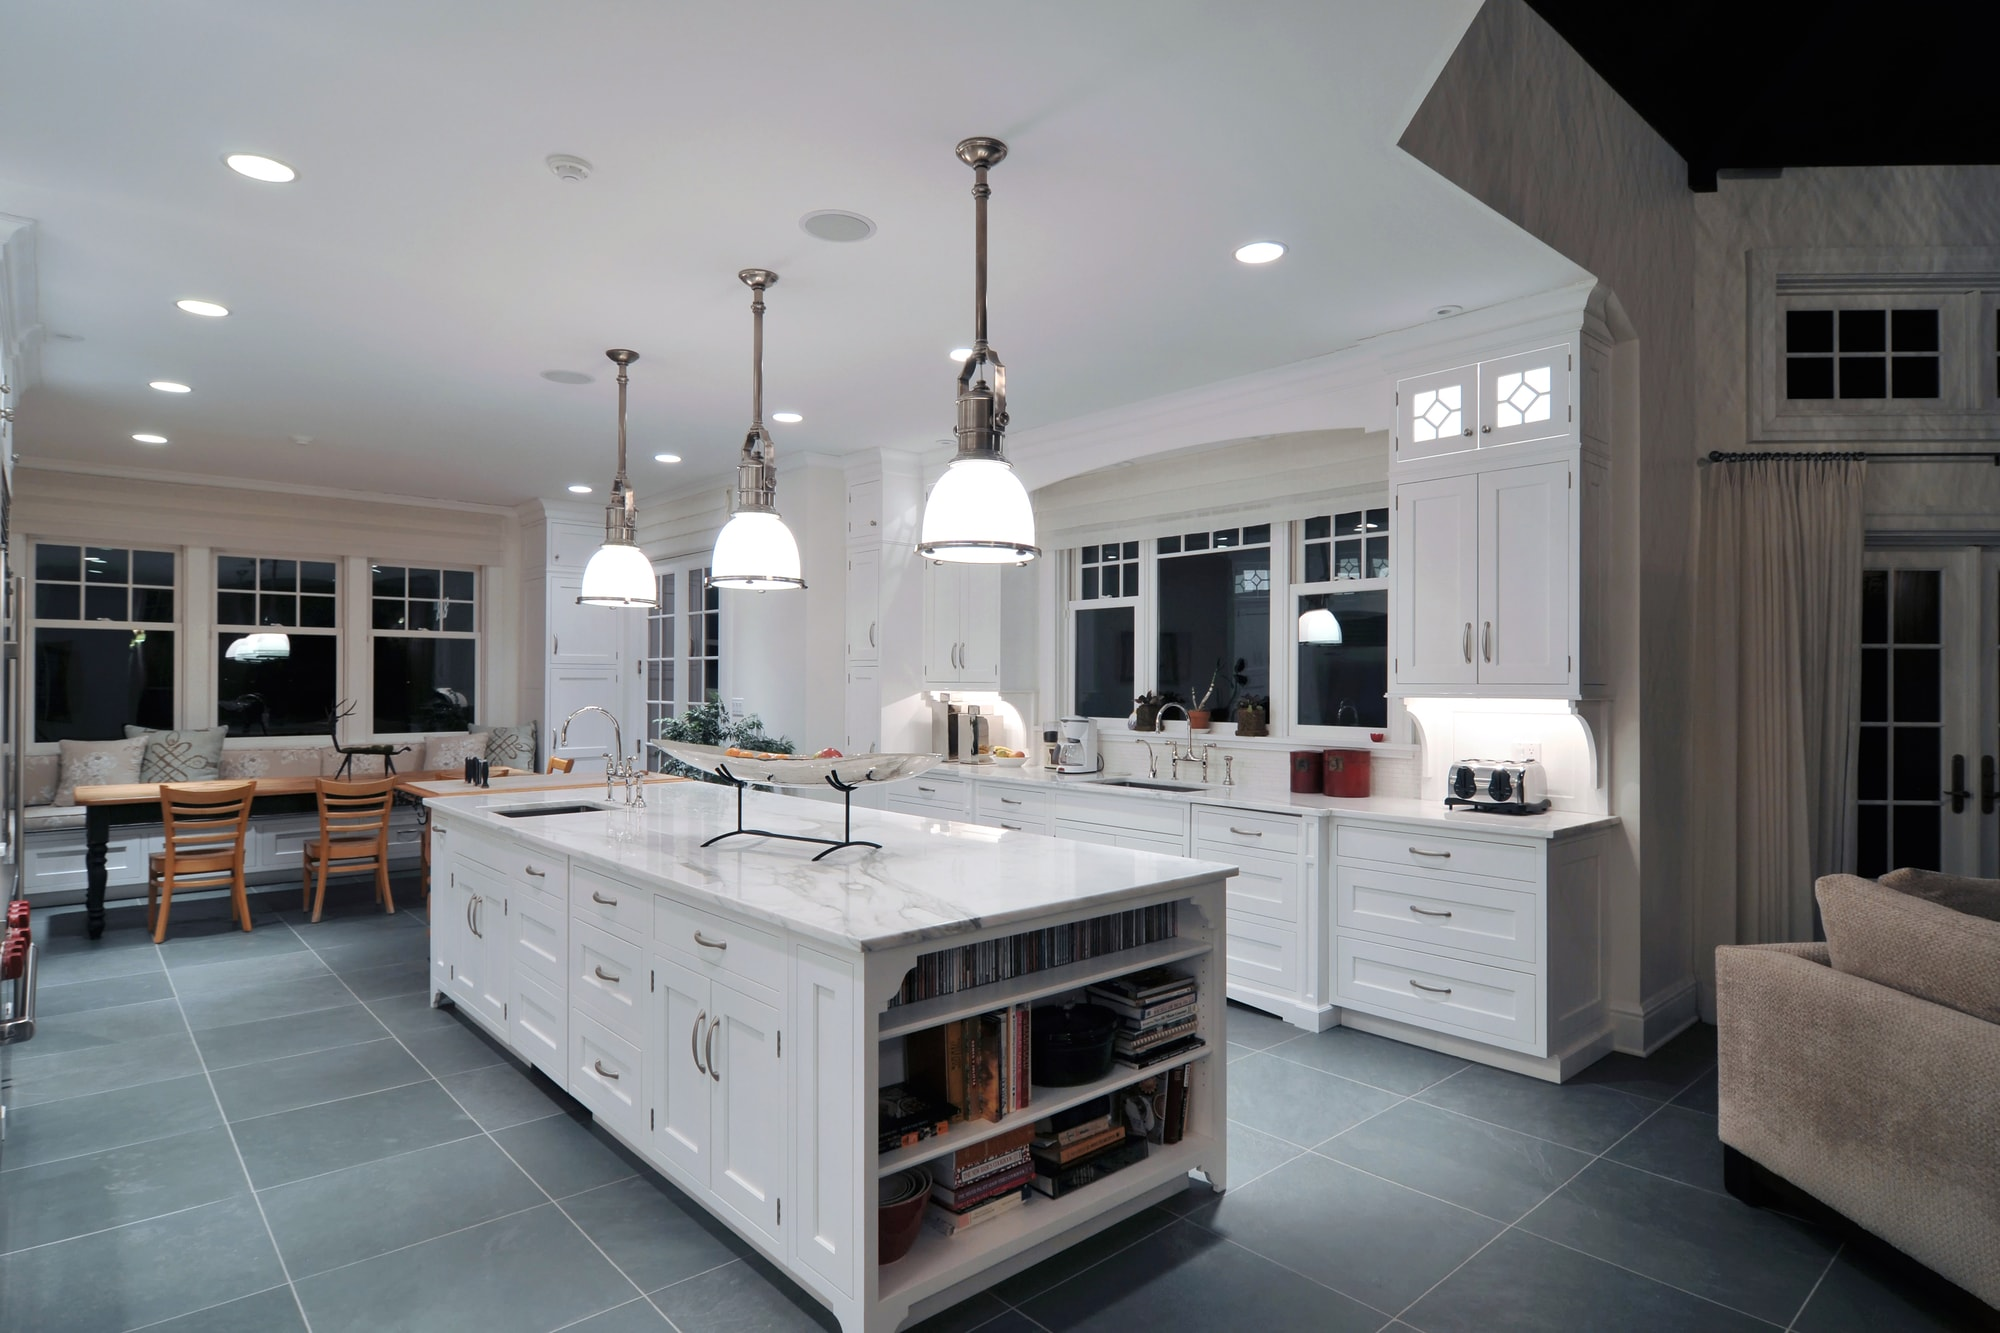 Traditional style kitchen with custom built shelf on kitchen island